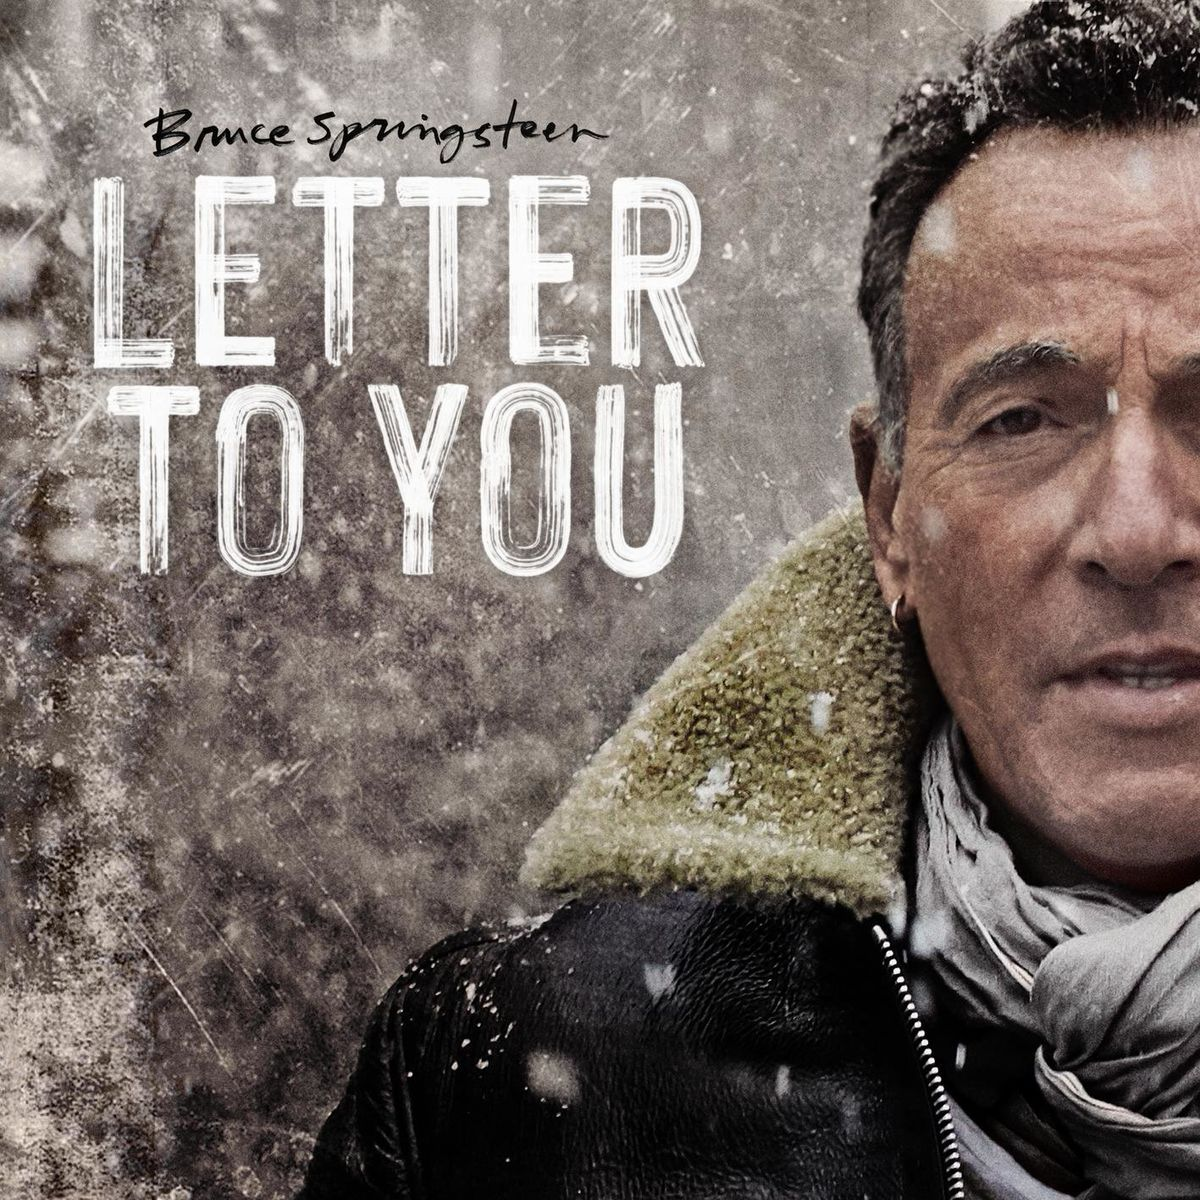 Bruce Springsteen-Letter To You